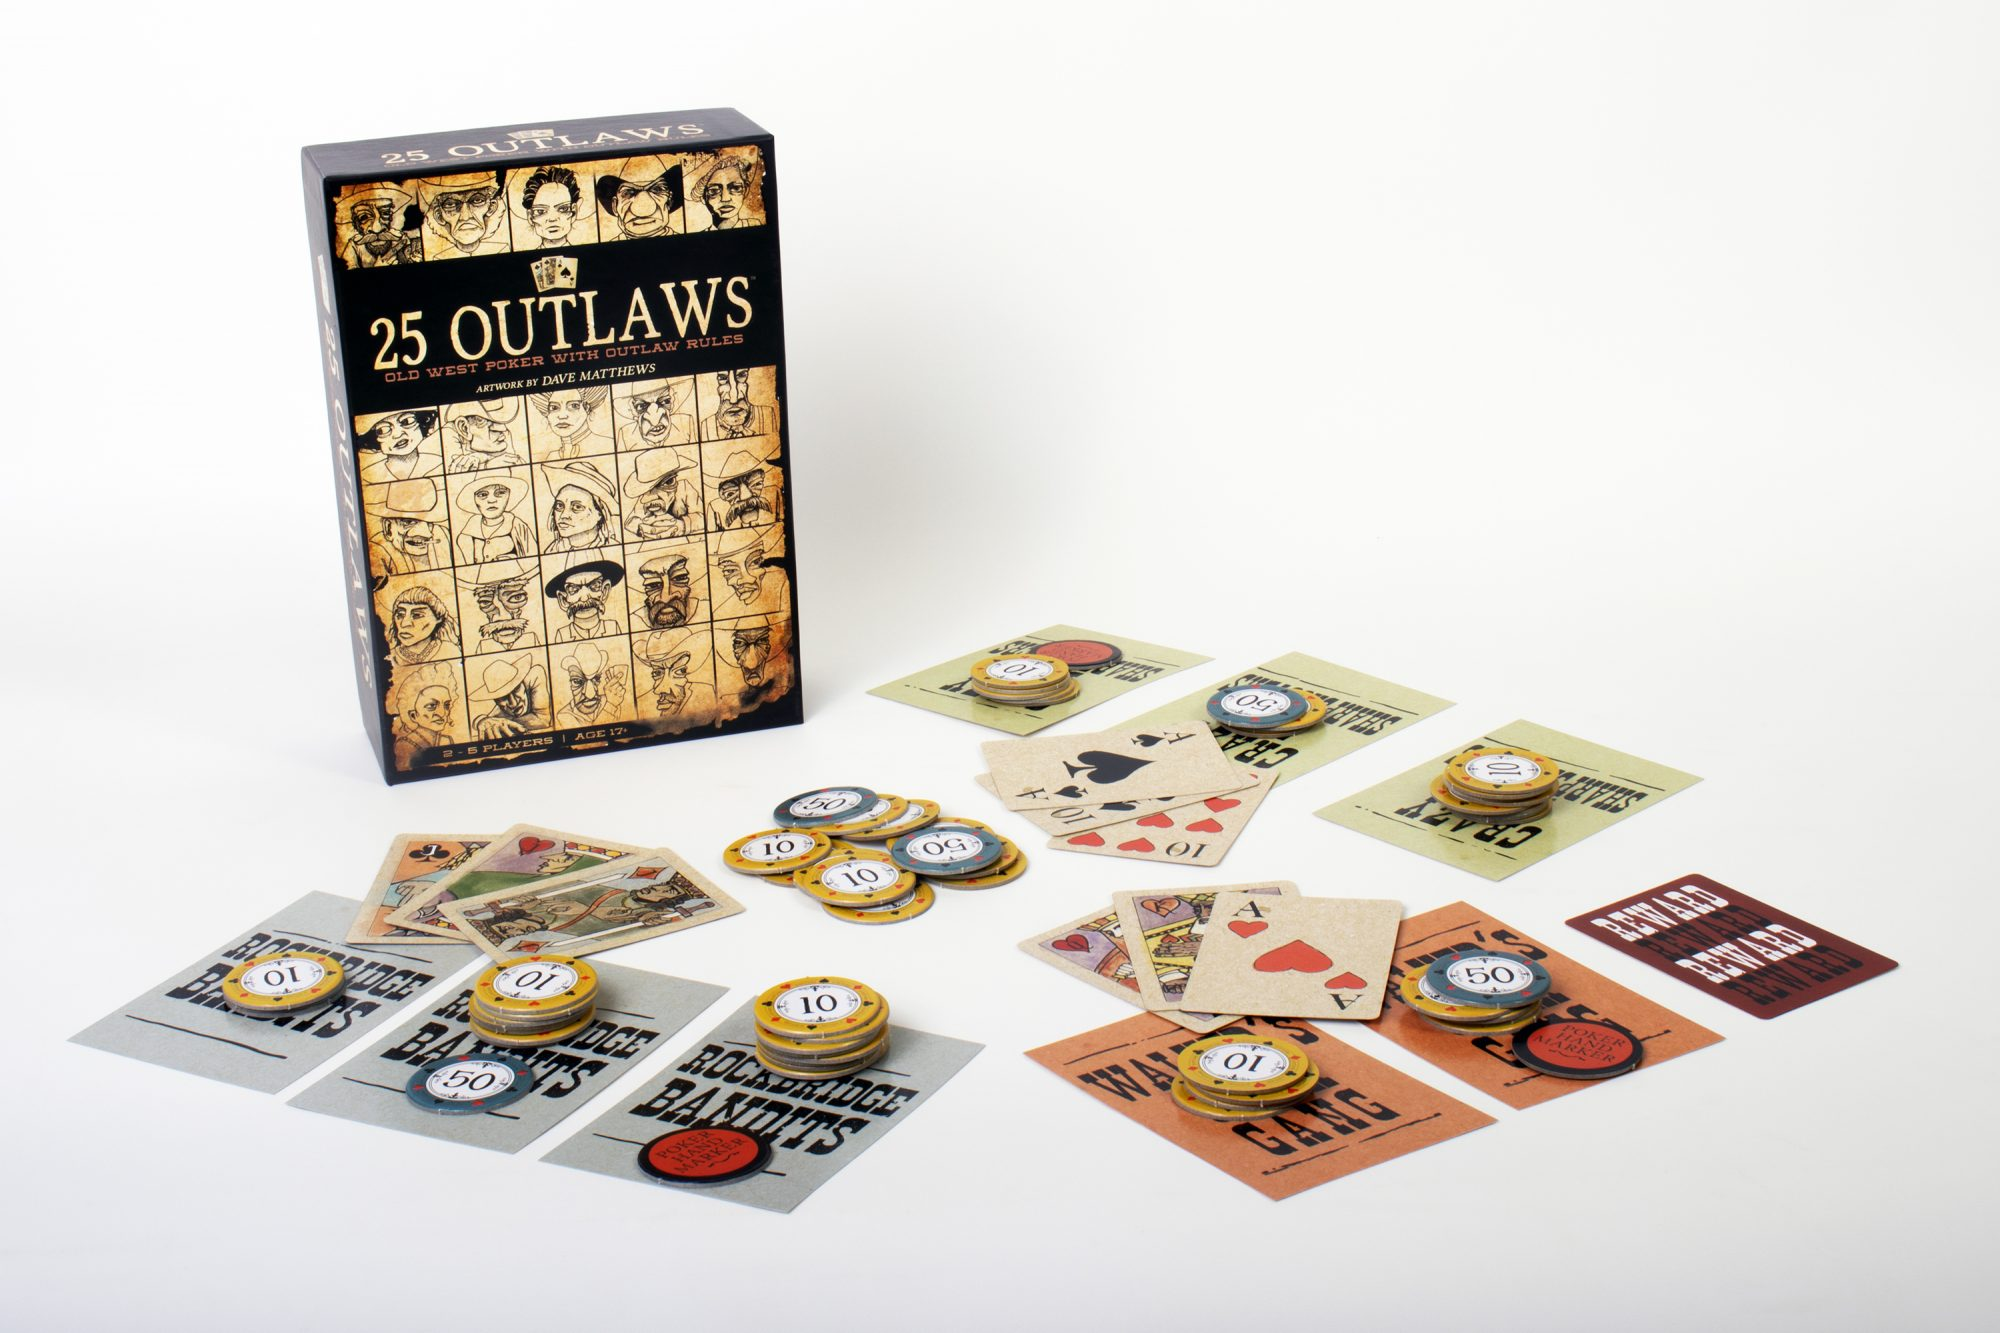 25 Outlaws